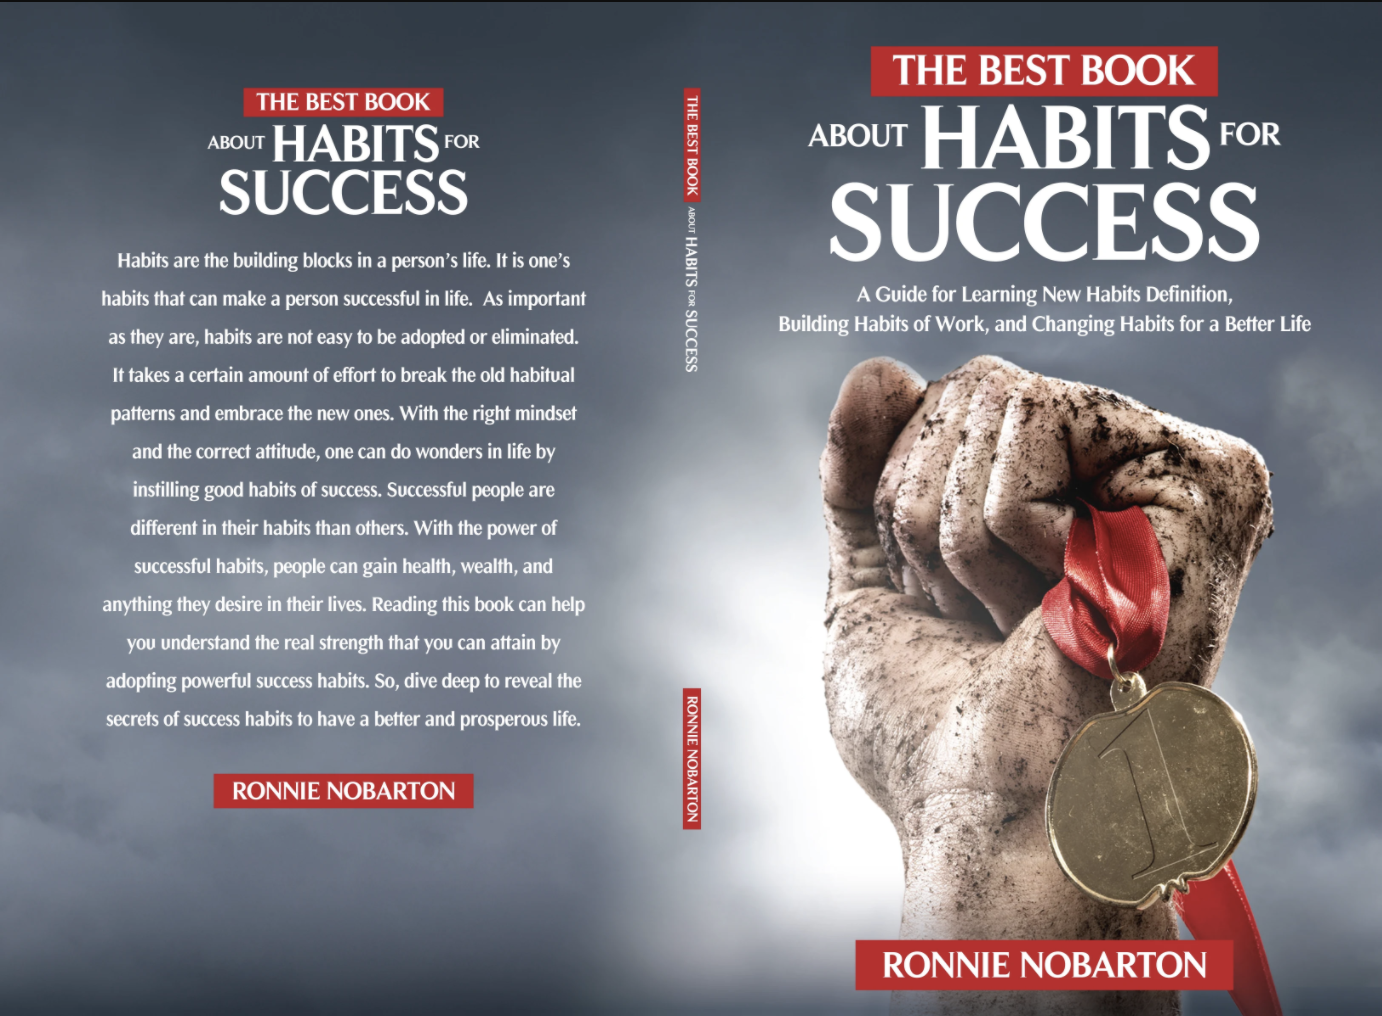 'The Best Book about Habits for Success' Reveals the Way to Success & Happiness in the New Millennium